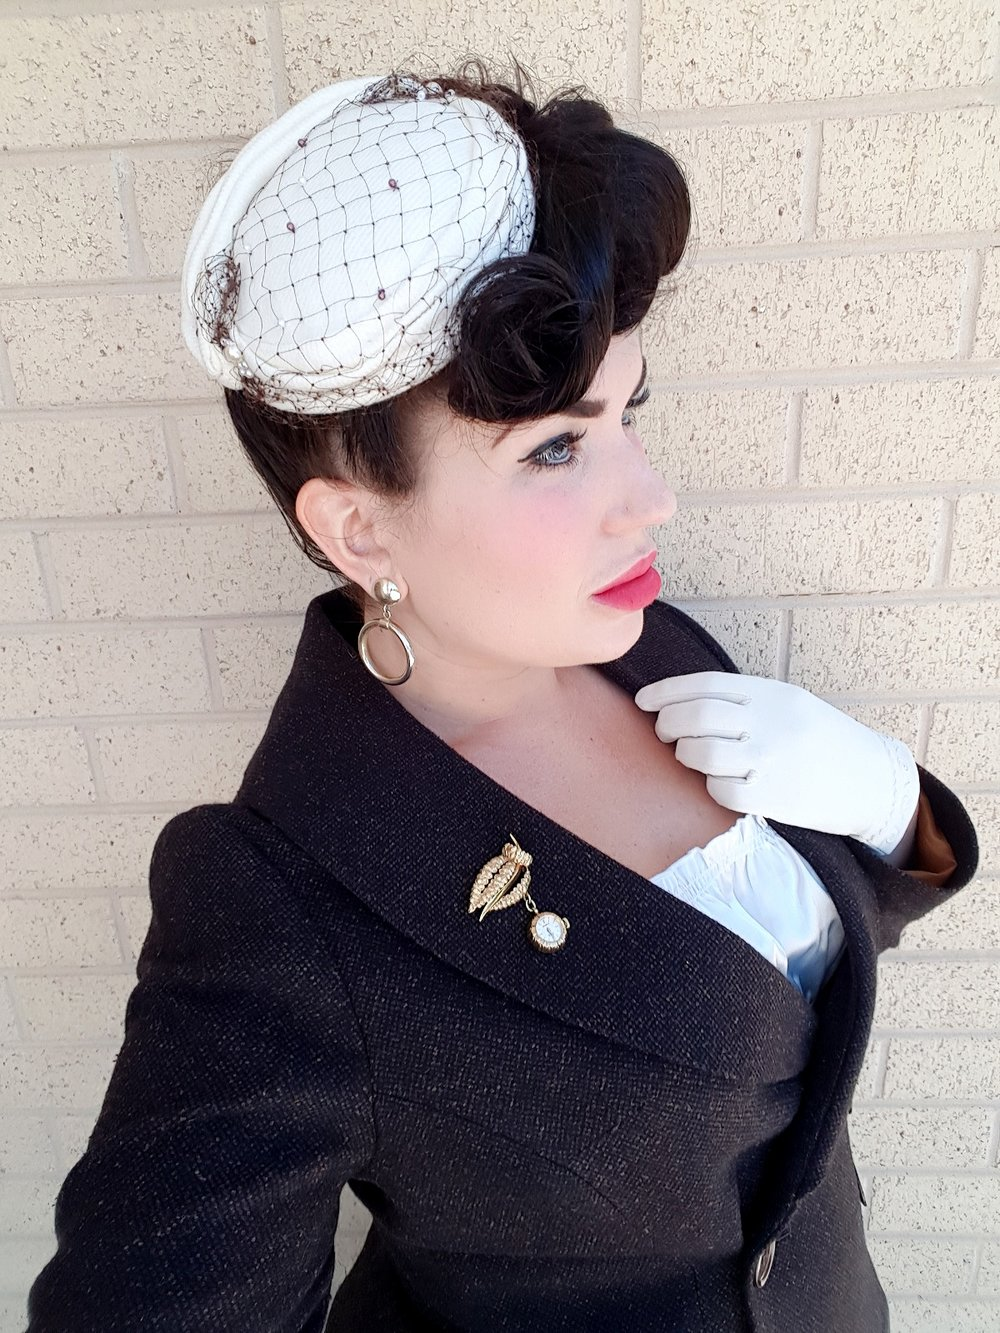 As I mentioned above, hats played a big part of fashion in the 1940s. I had this lovely fascinator style hat designed to match this ensemble by German Milliner Ricarda Engelsberger. Richarda can be found    here    or on Instagram @mein_wunderbarer_hutsalon